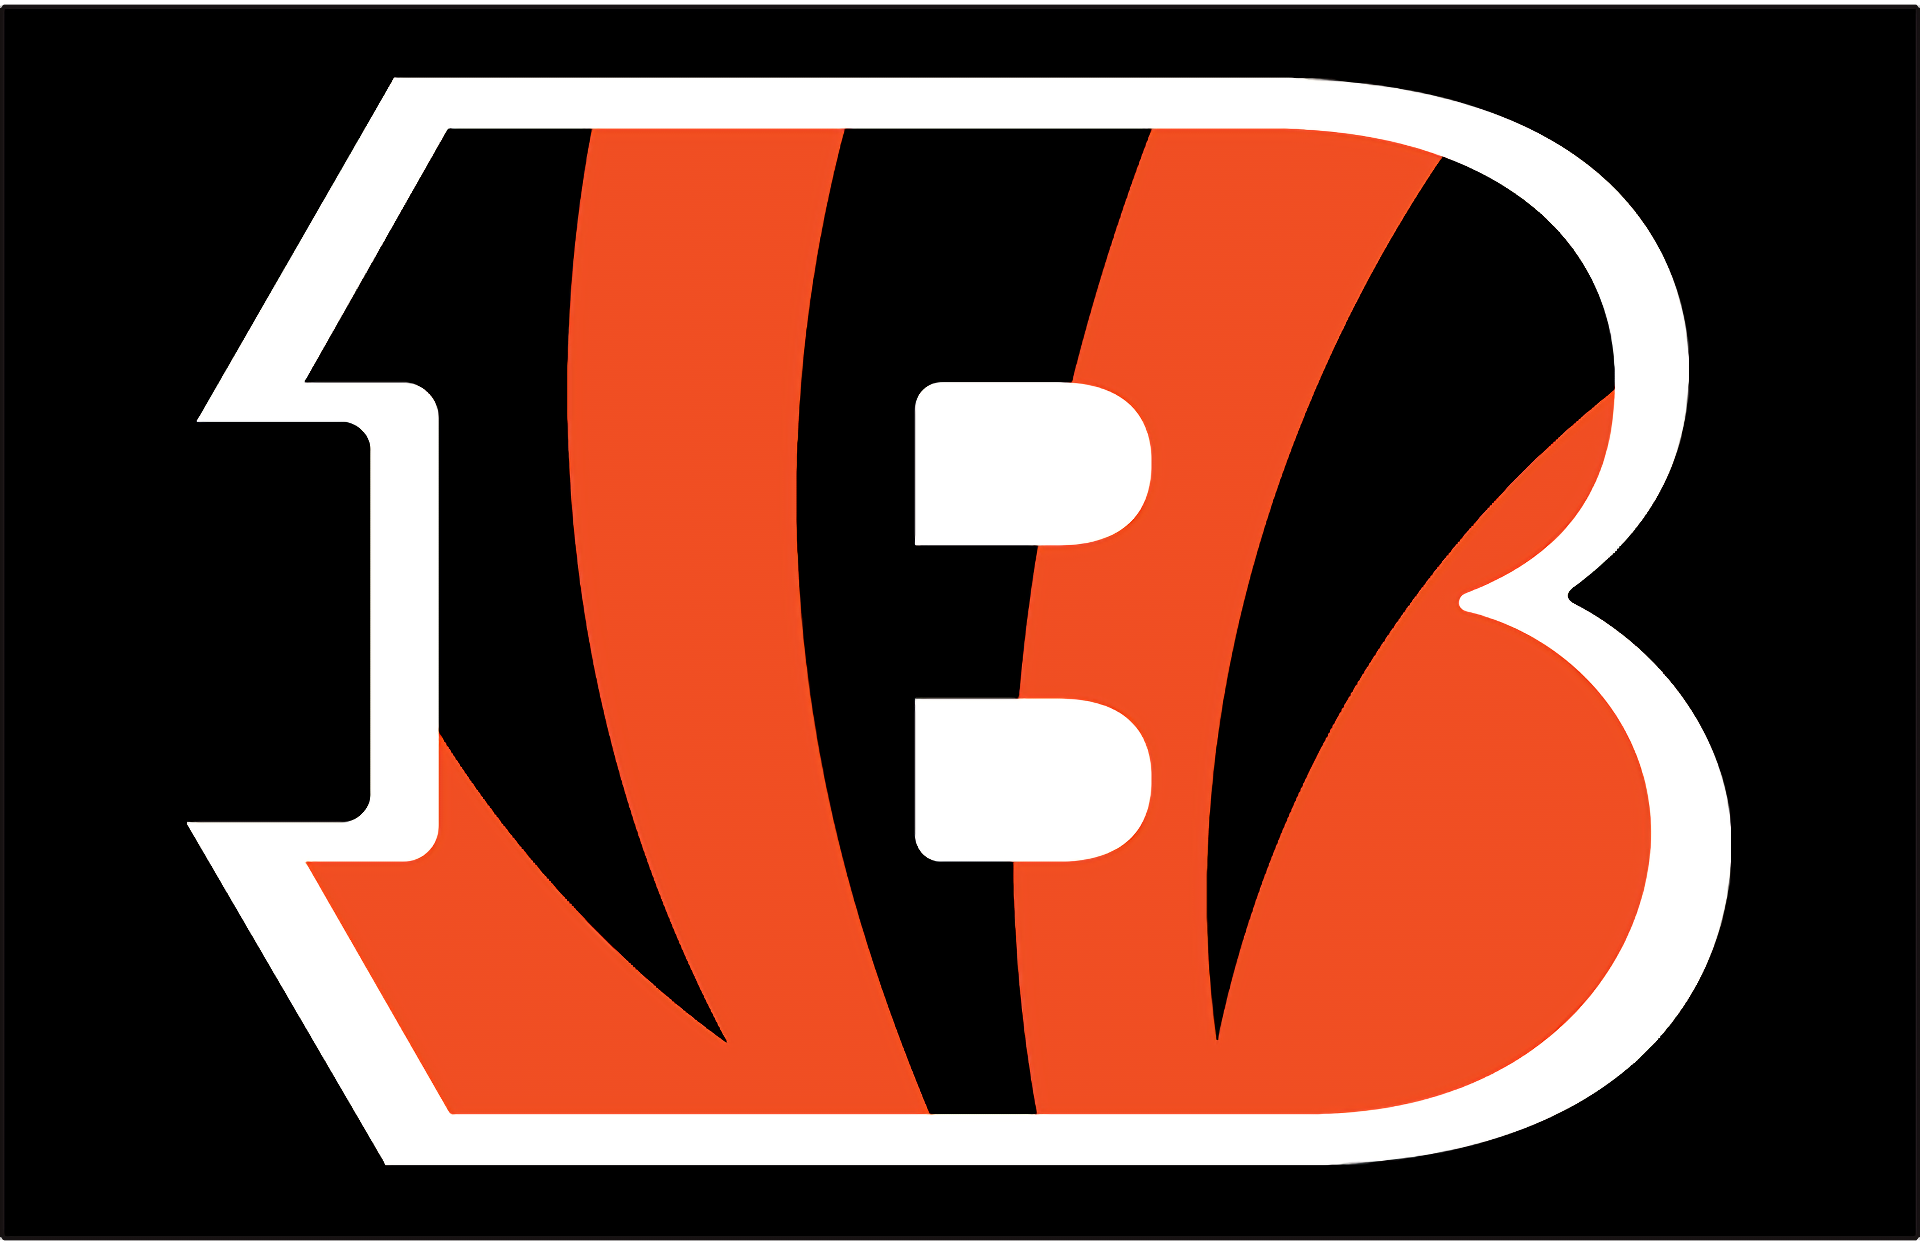 Bengals HD Wallpaper